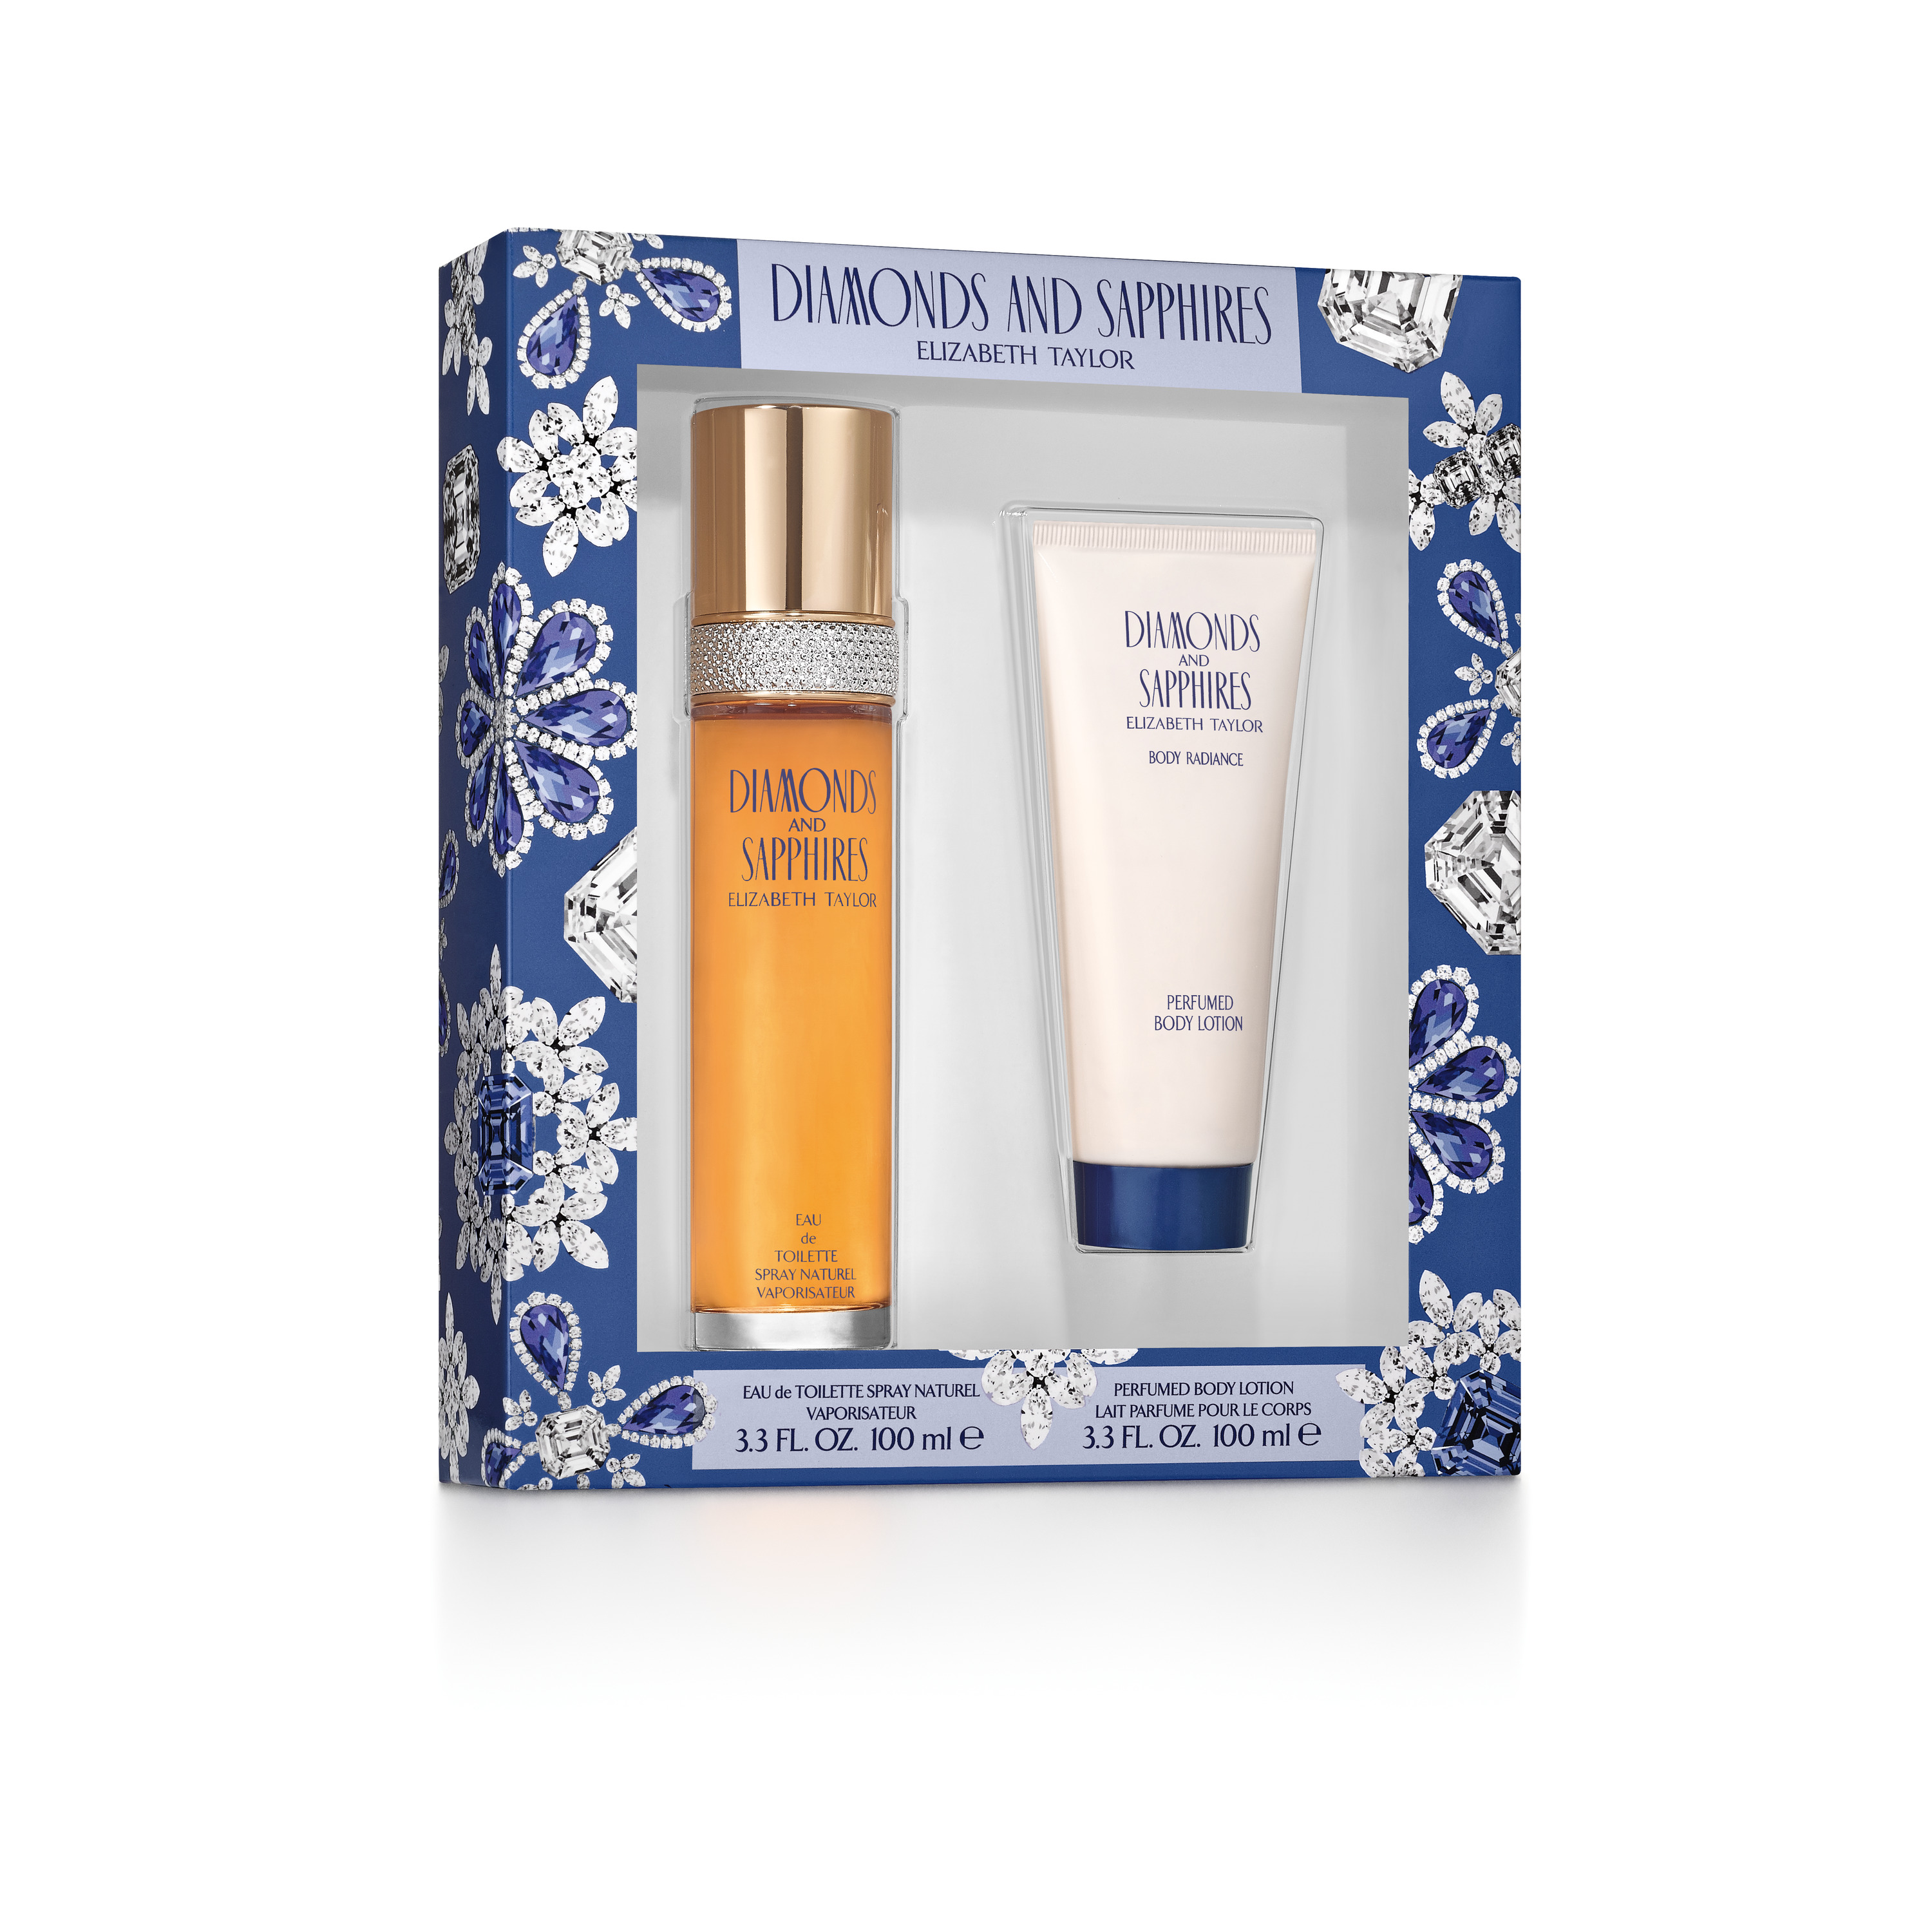 Elizabeth Taylor Diamonds and Sapphires Fragrance Gift Set for Women, 2 pc